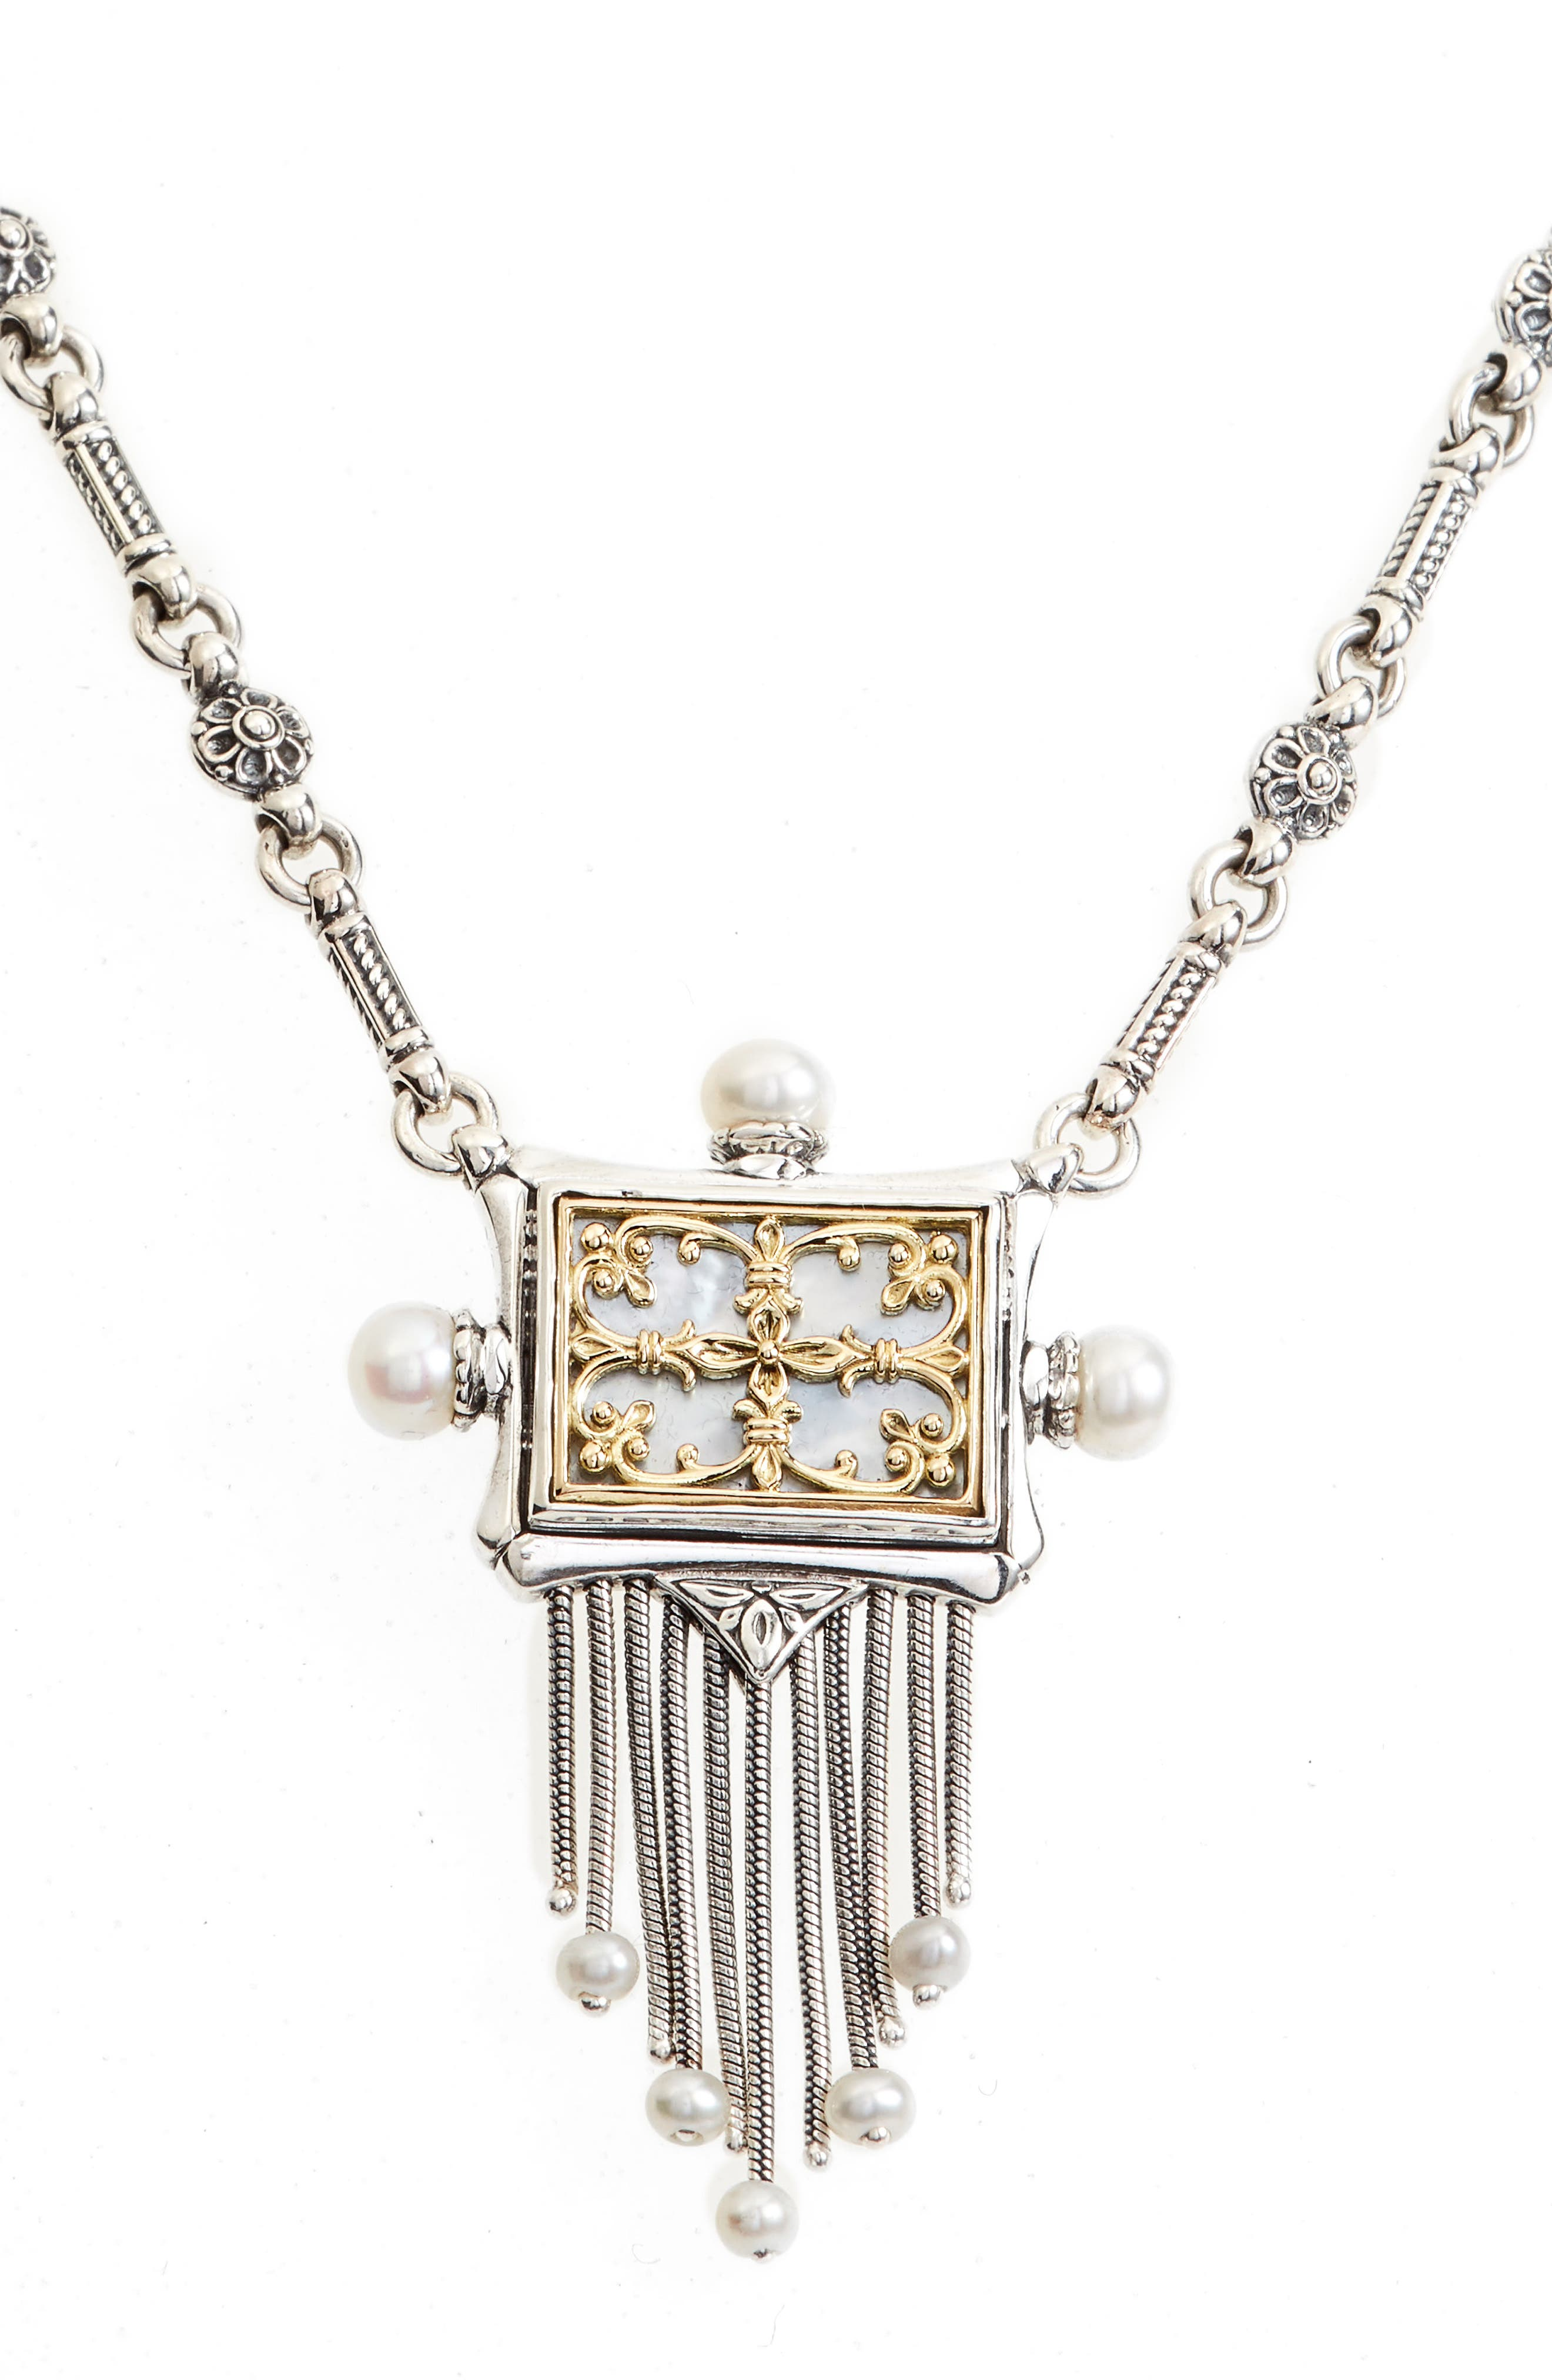 Etched Sterling Silver & Pearl Fringe Pendant,                             Main thumbnail 1, color,                             Silver/ Gold/ White